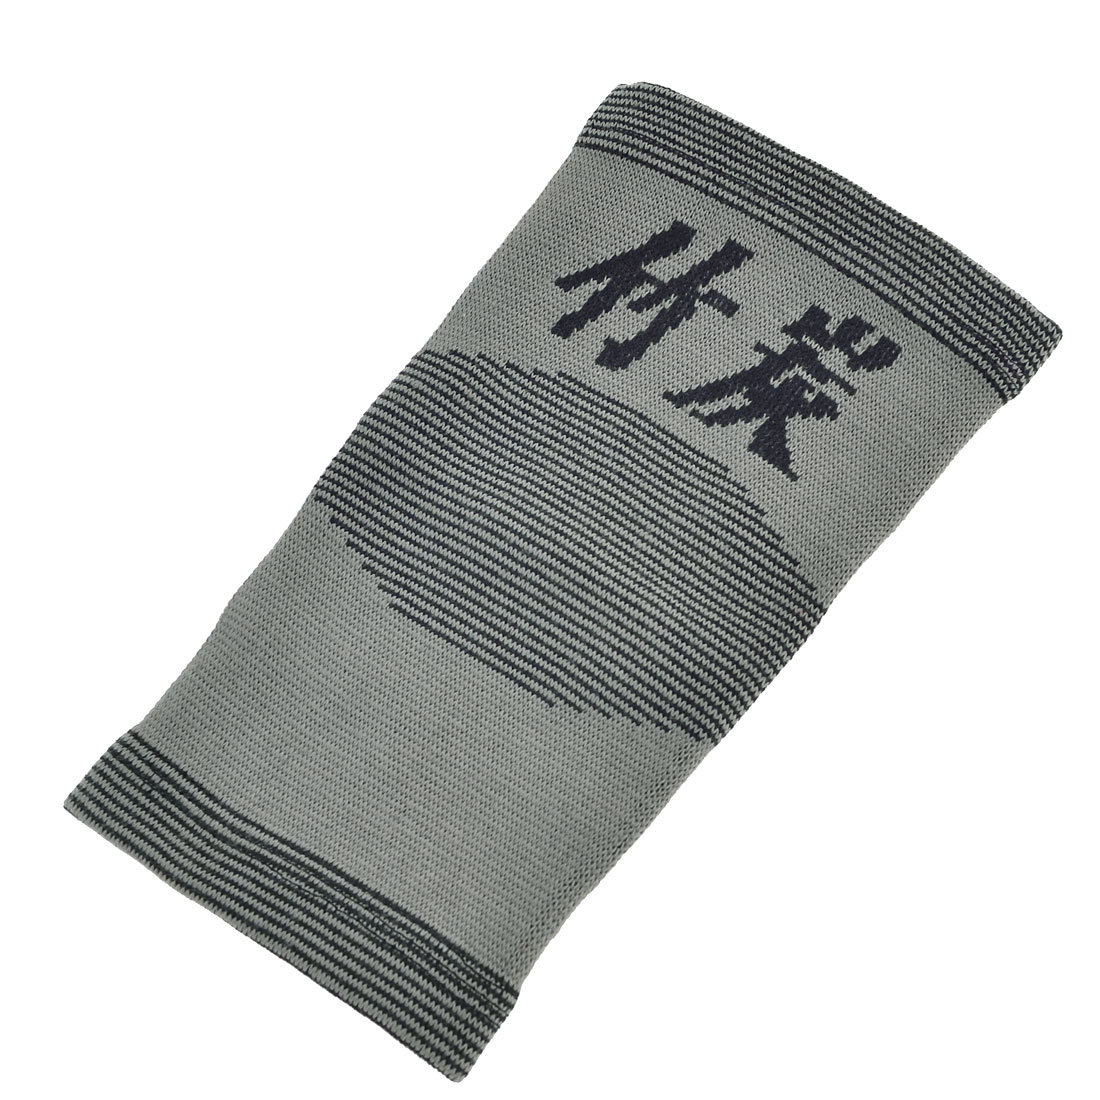 Athletic Stretchy Wrap Elbow Protective Support Wrap Gray Black